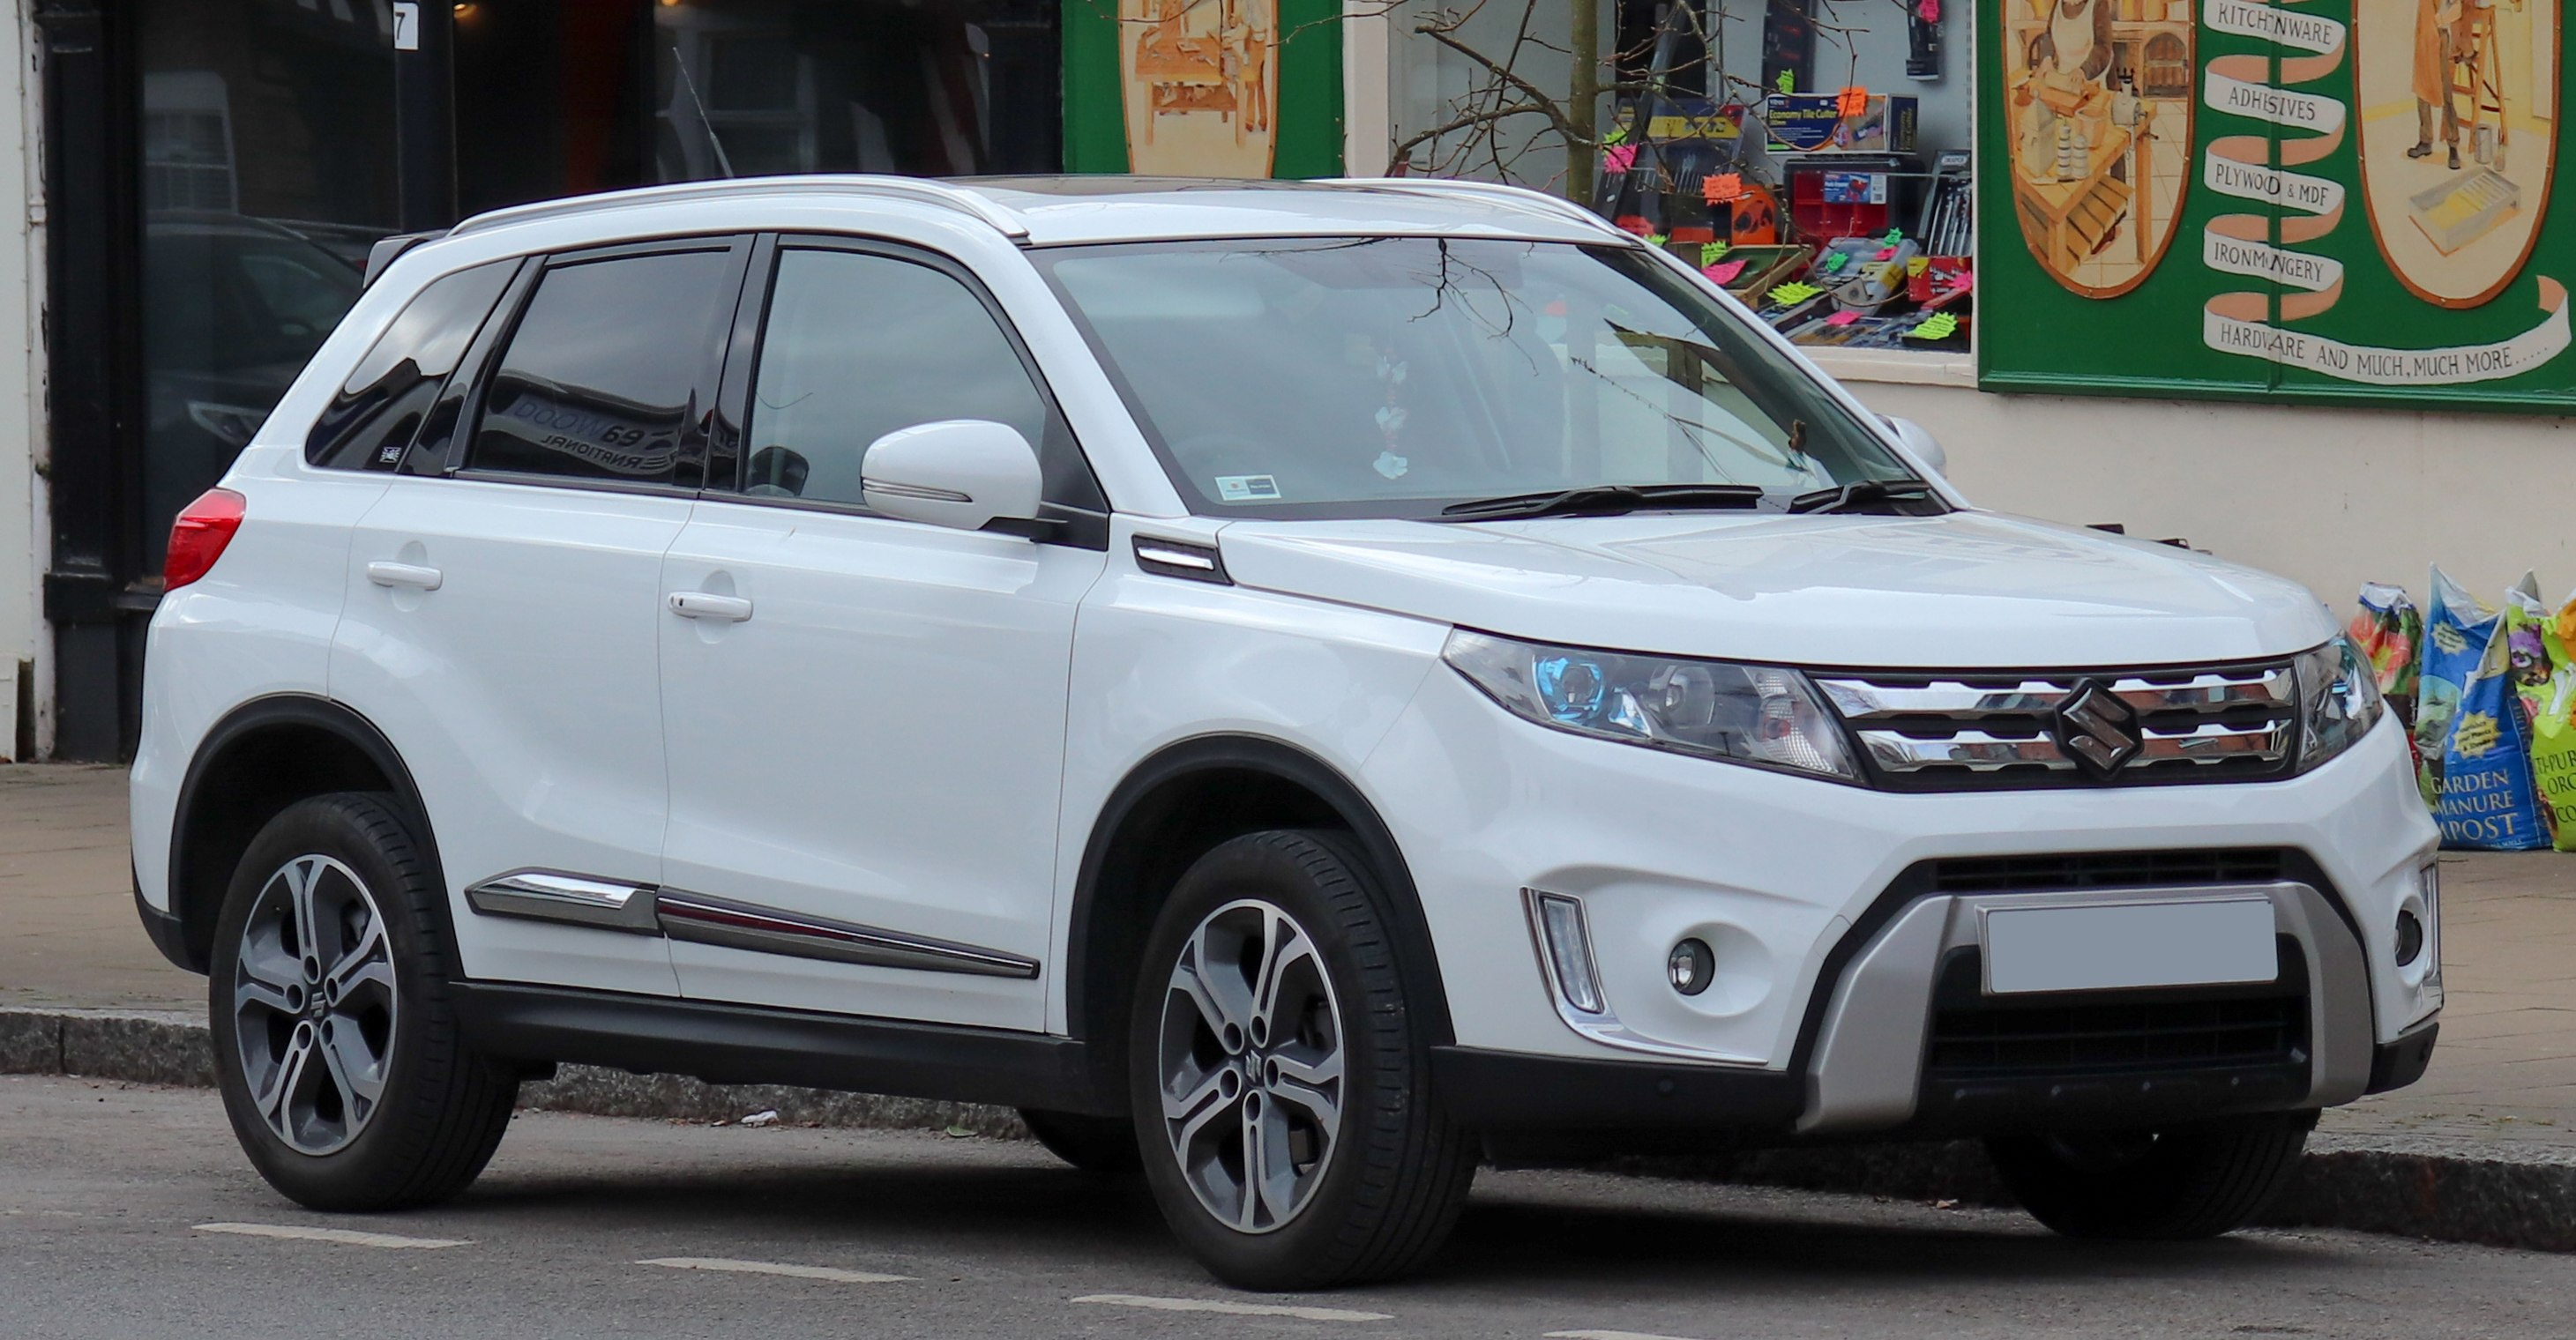 Suzuki Grand Vitara - The complete information and online